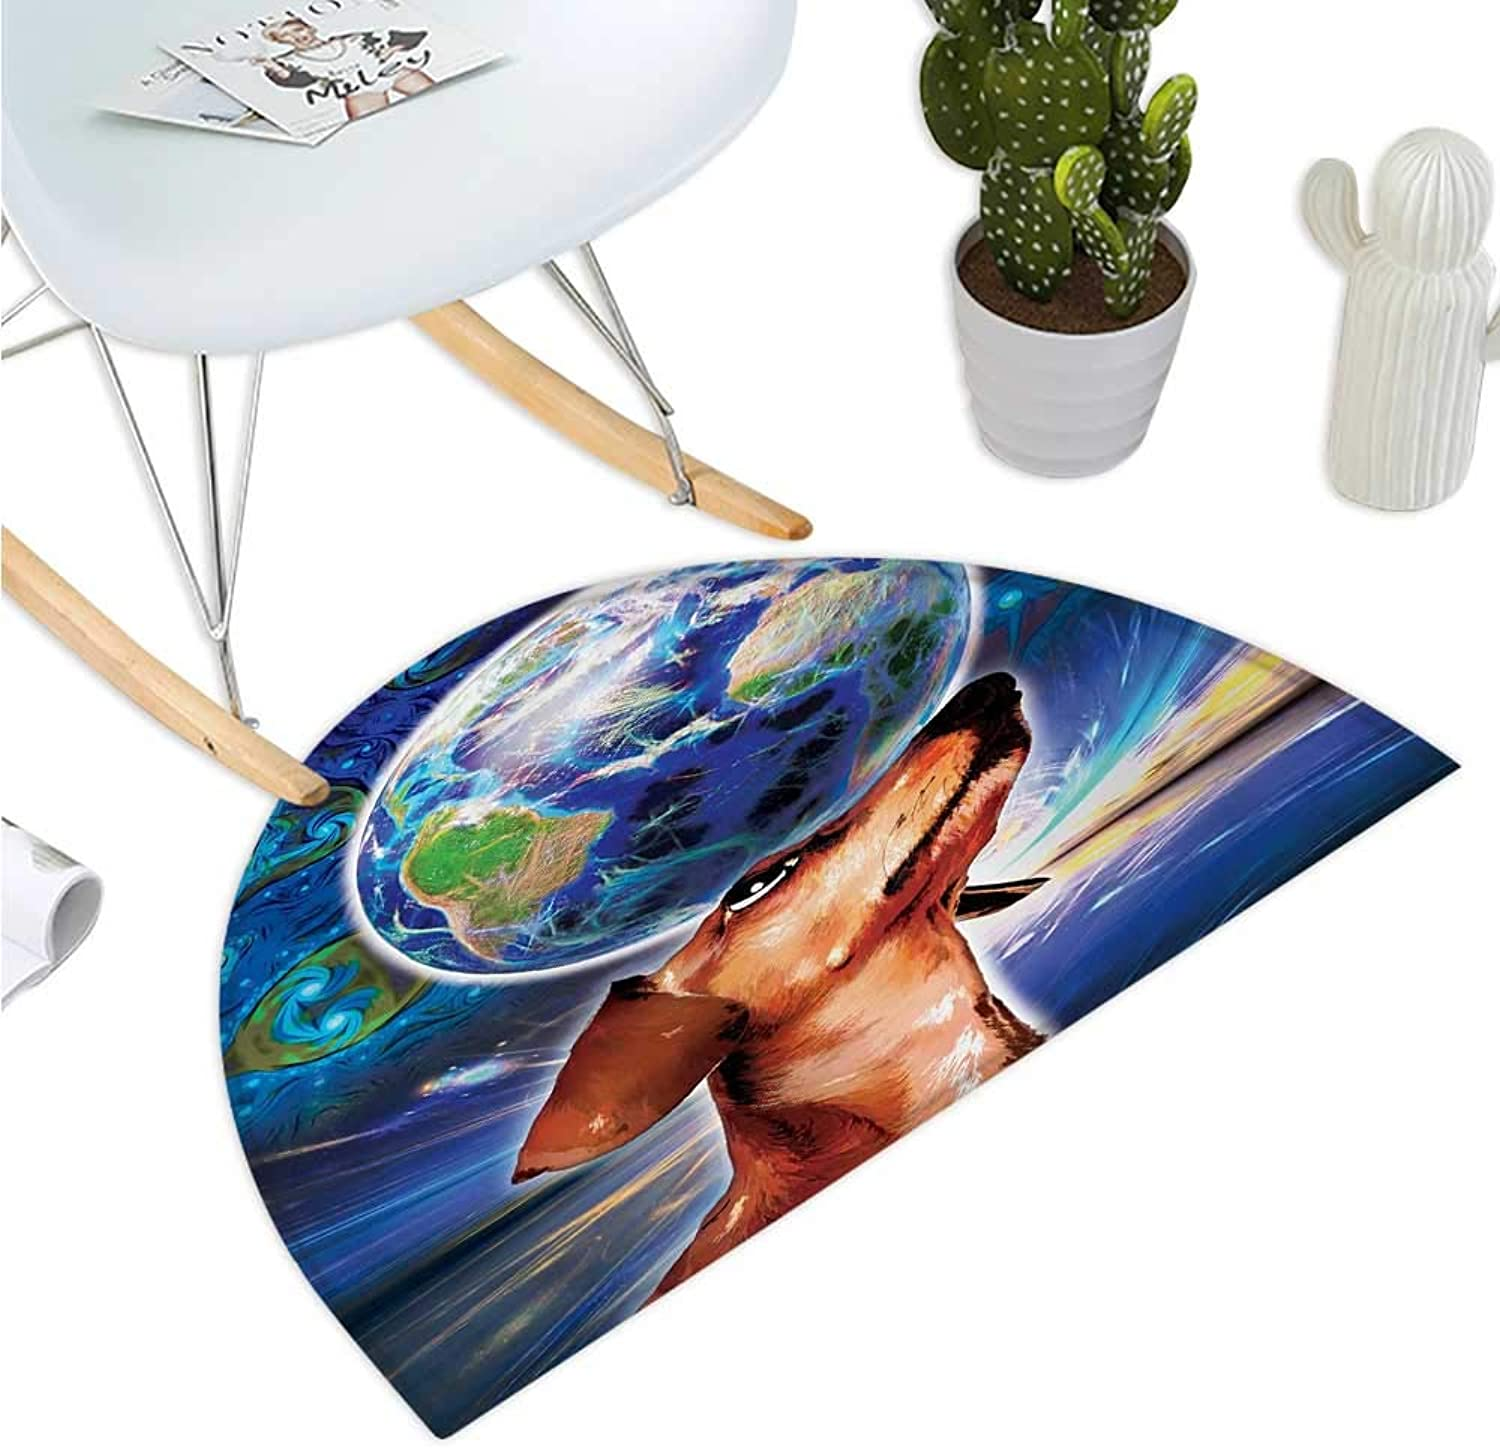 Animal Semicircular Cushion Cute Adorable Dog Holding Earth on his Head Nose with Paisley Like Design Backdrop Bathroom Mat H 35.4  xD 53.1  Multicolor